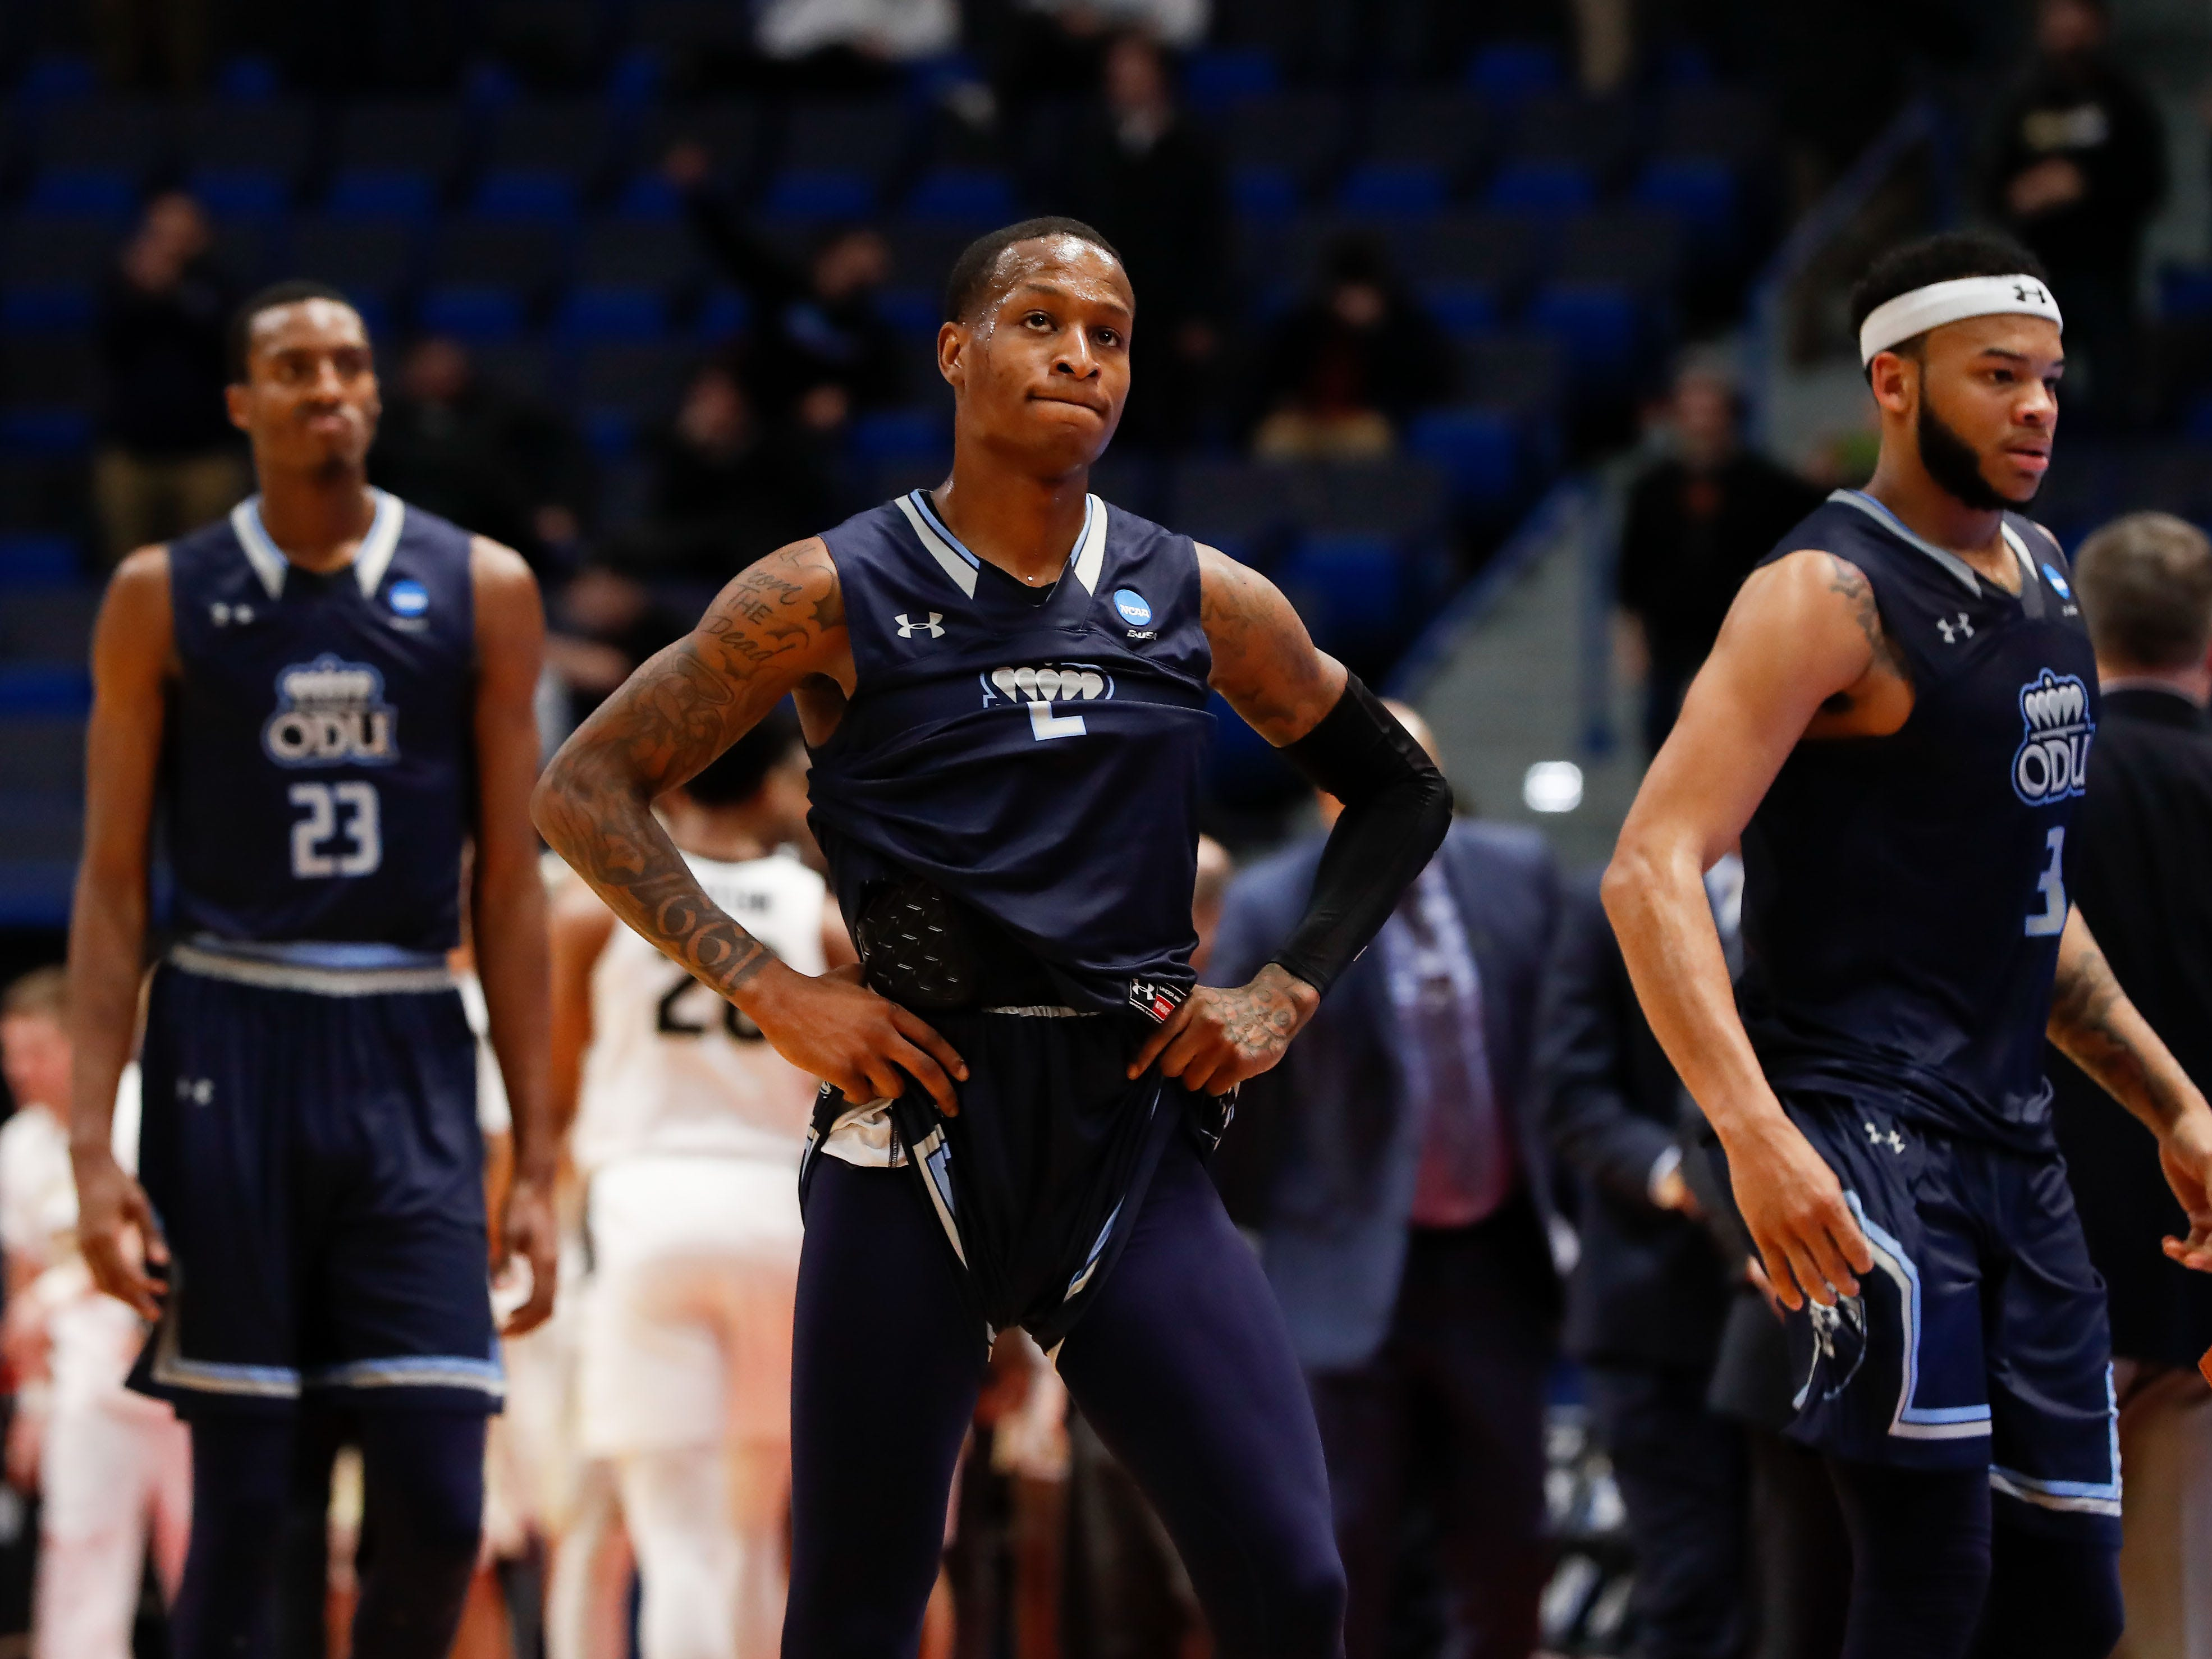 First round: No. 14 Old Dominion loses to No. 3 Purdue, 61-48.